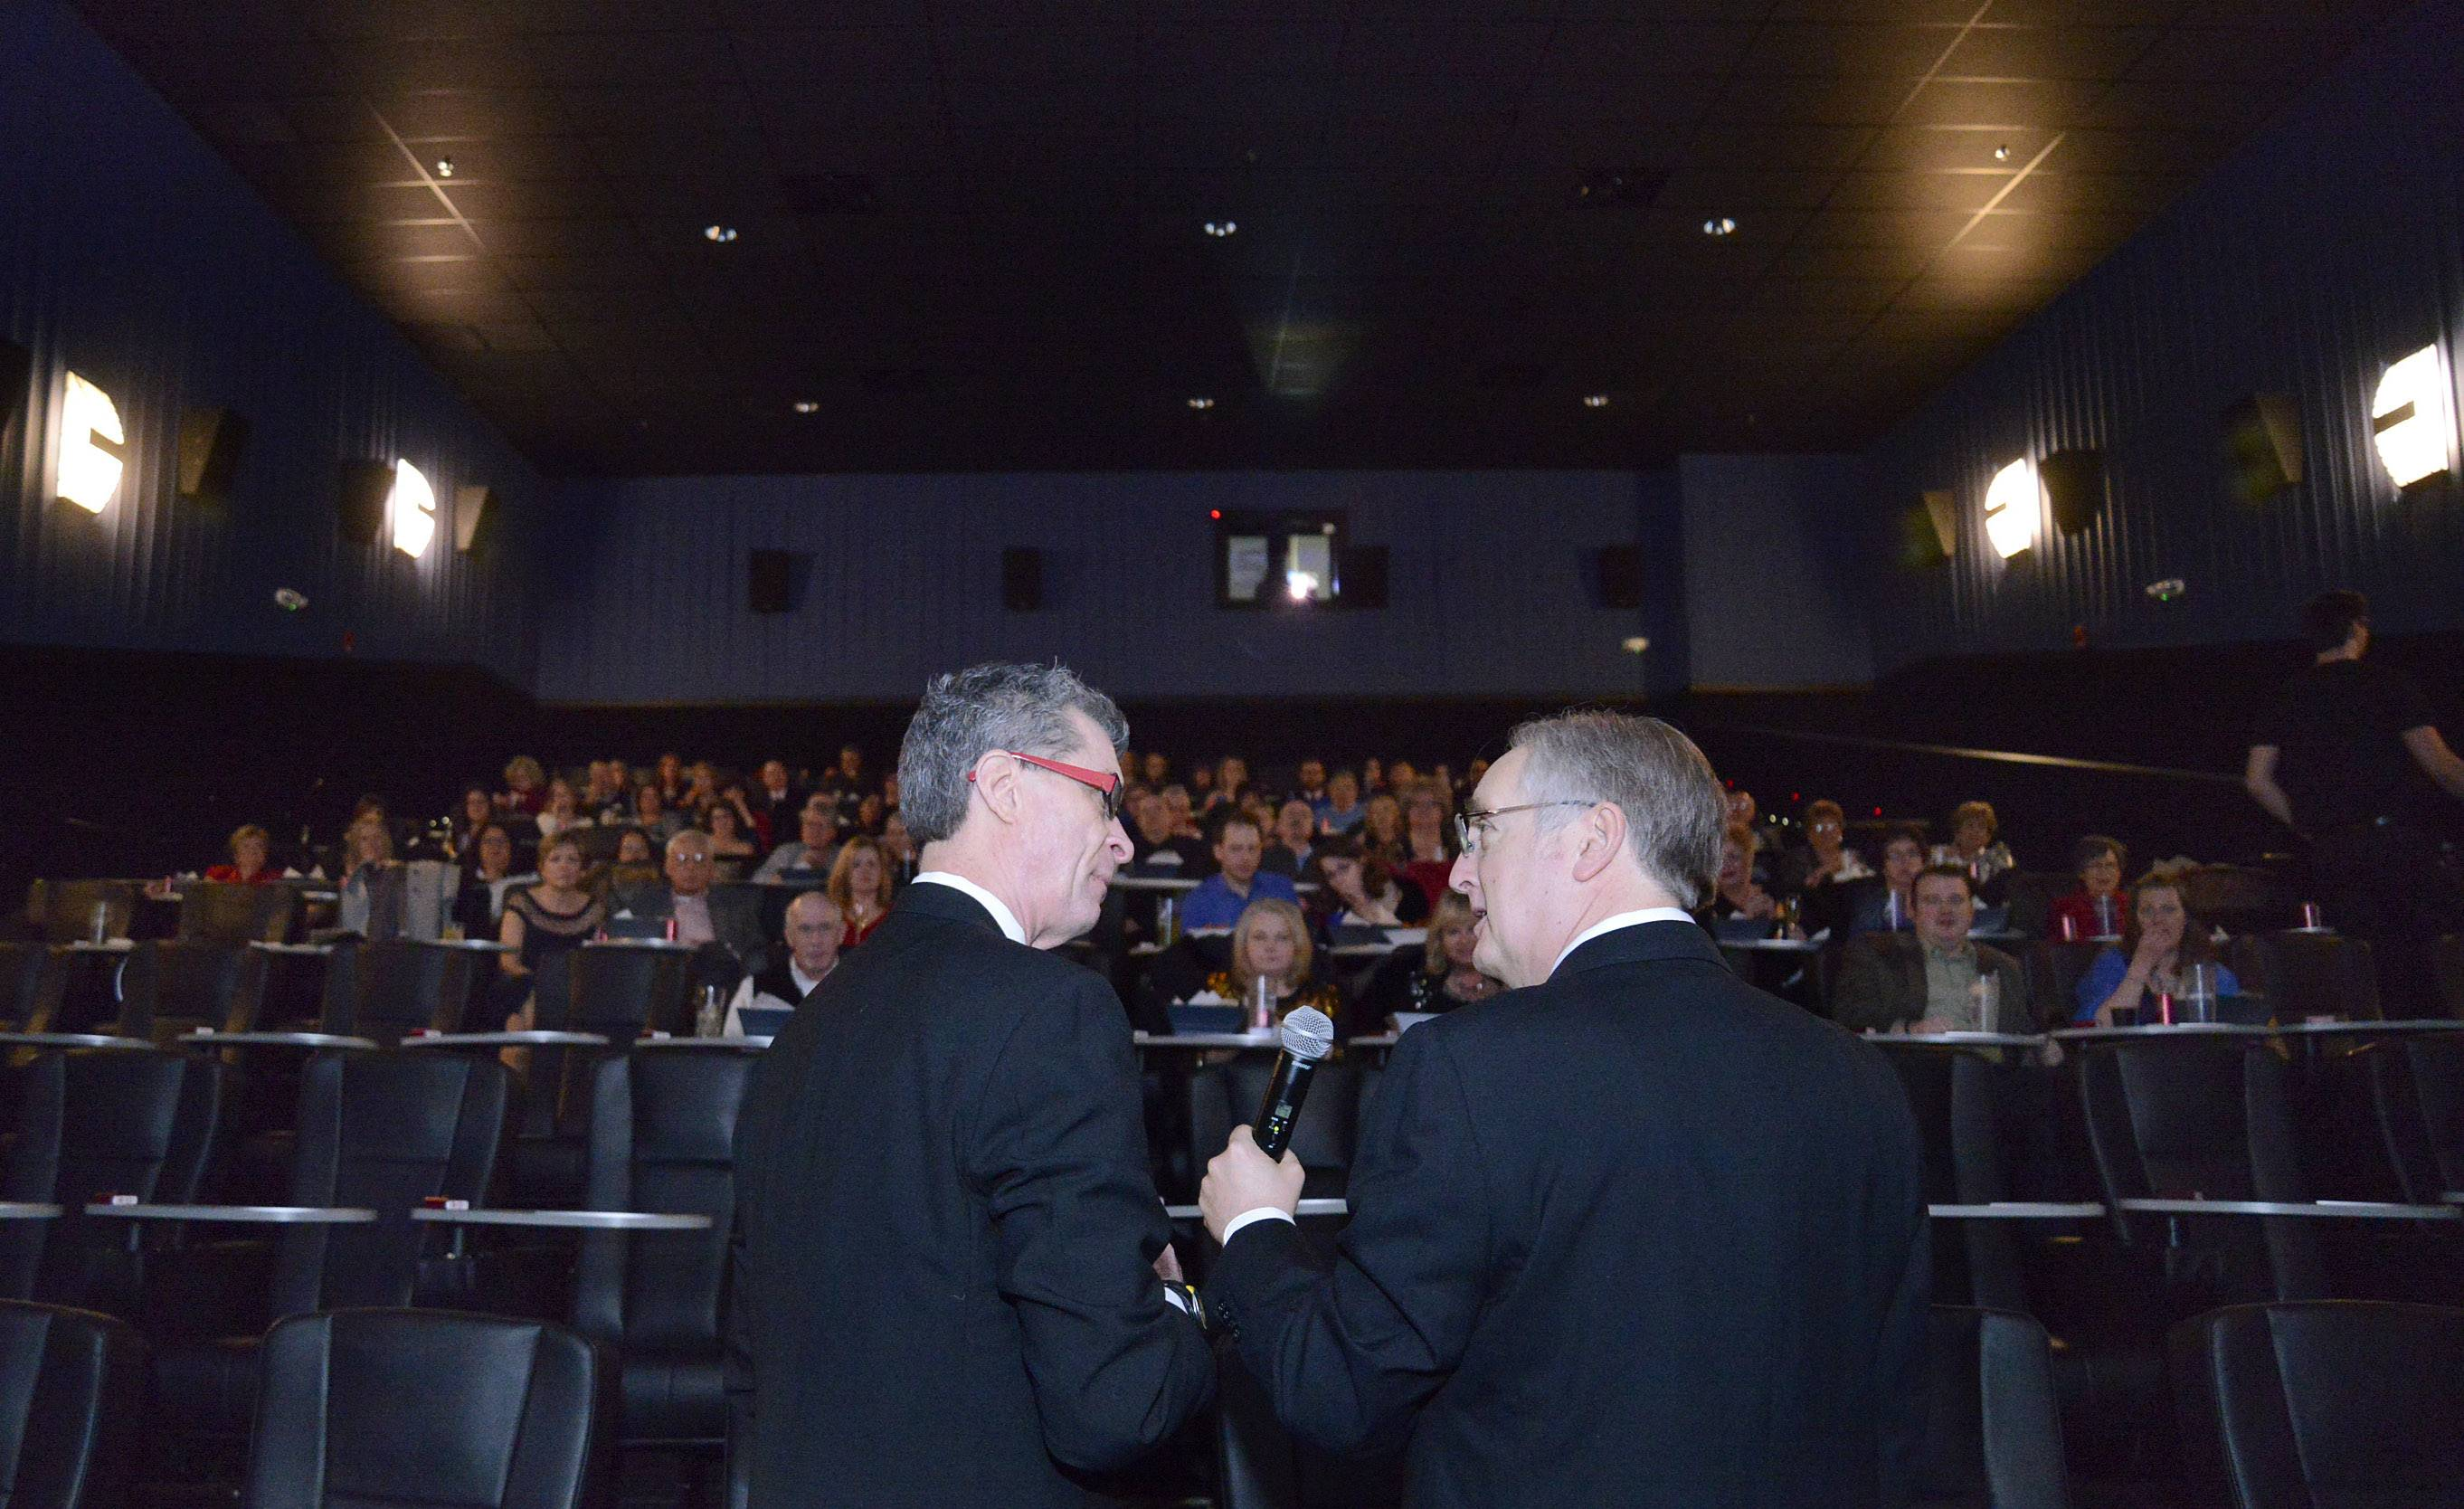 Daily Herald's Dann Gire, left, and Raymond Benson of Buffalo Grove host the 86th Academy Awards party for Daily Herald subscribers at Studio Movie Grill in Wheaton on Sunday, March 2.